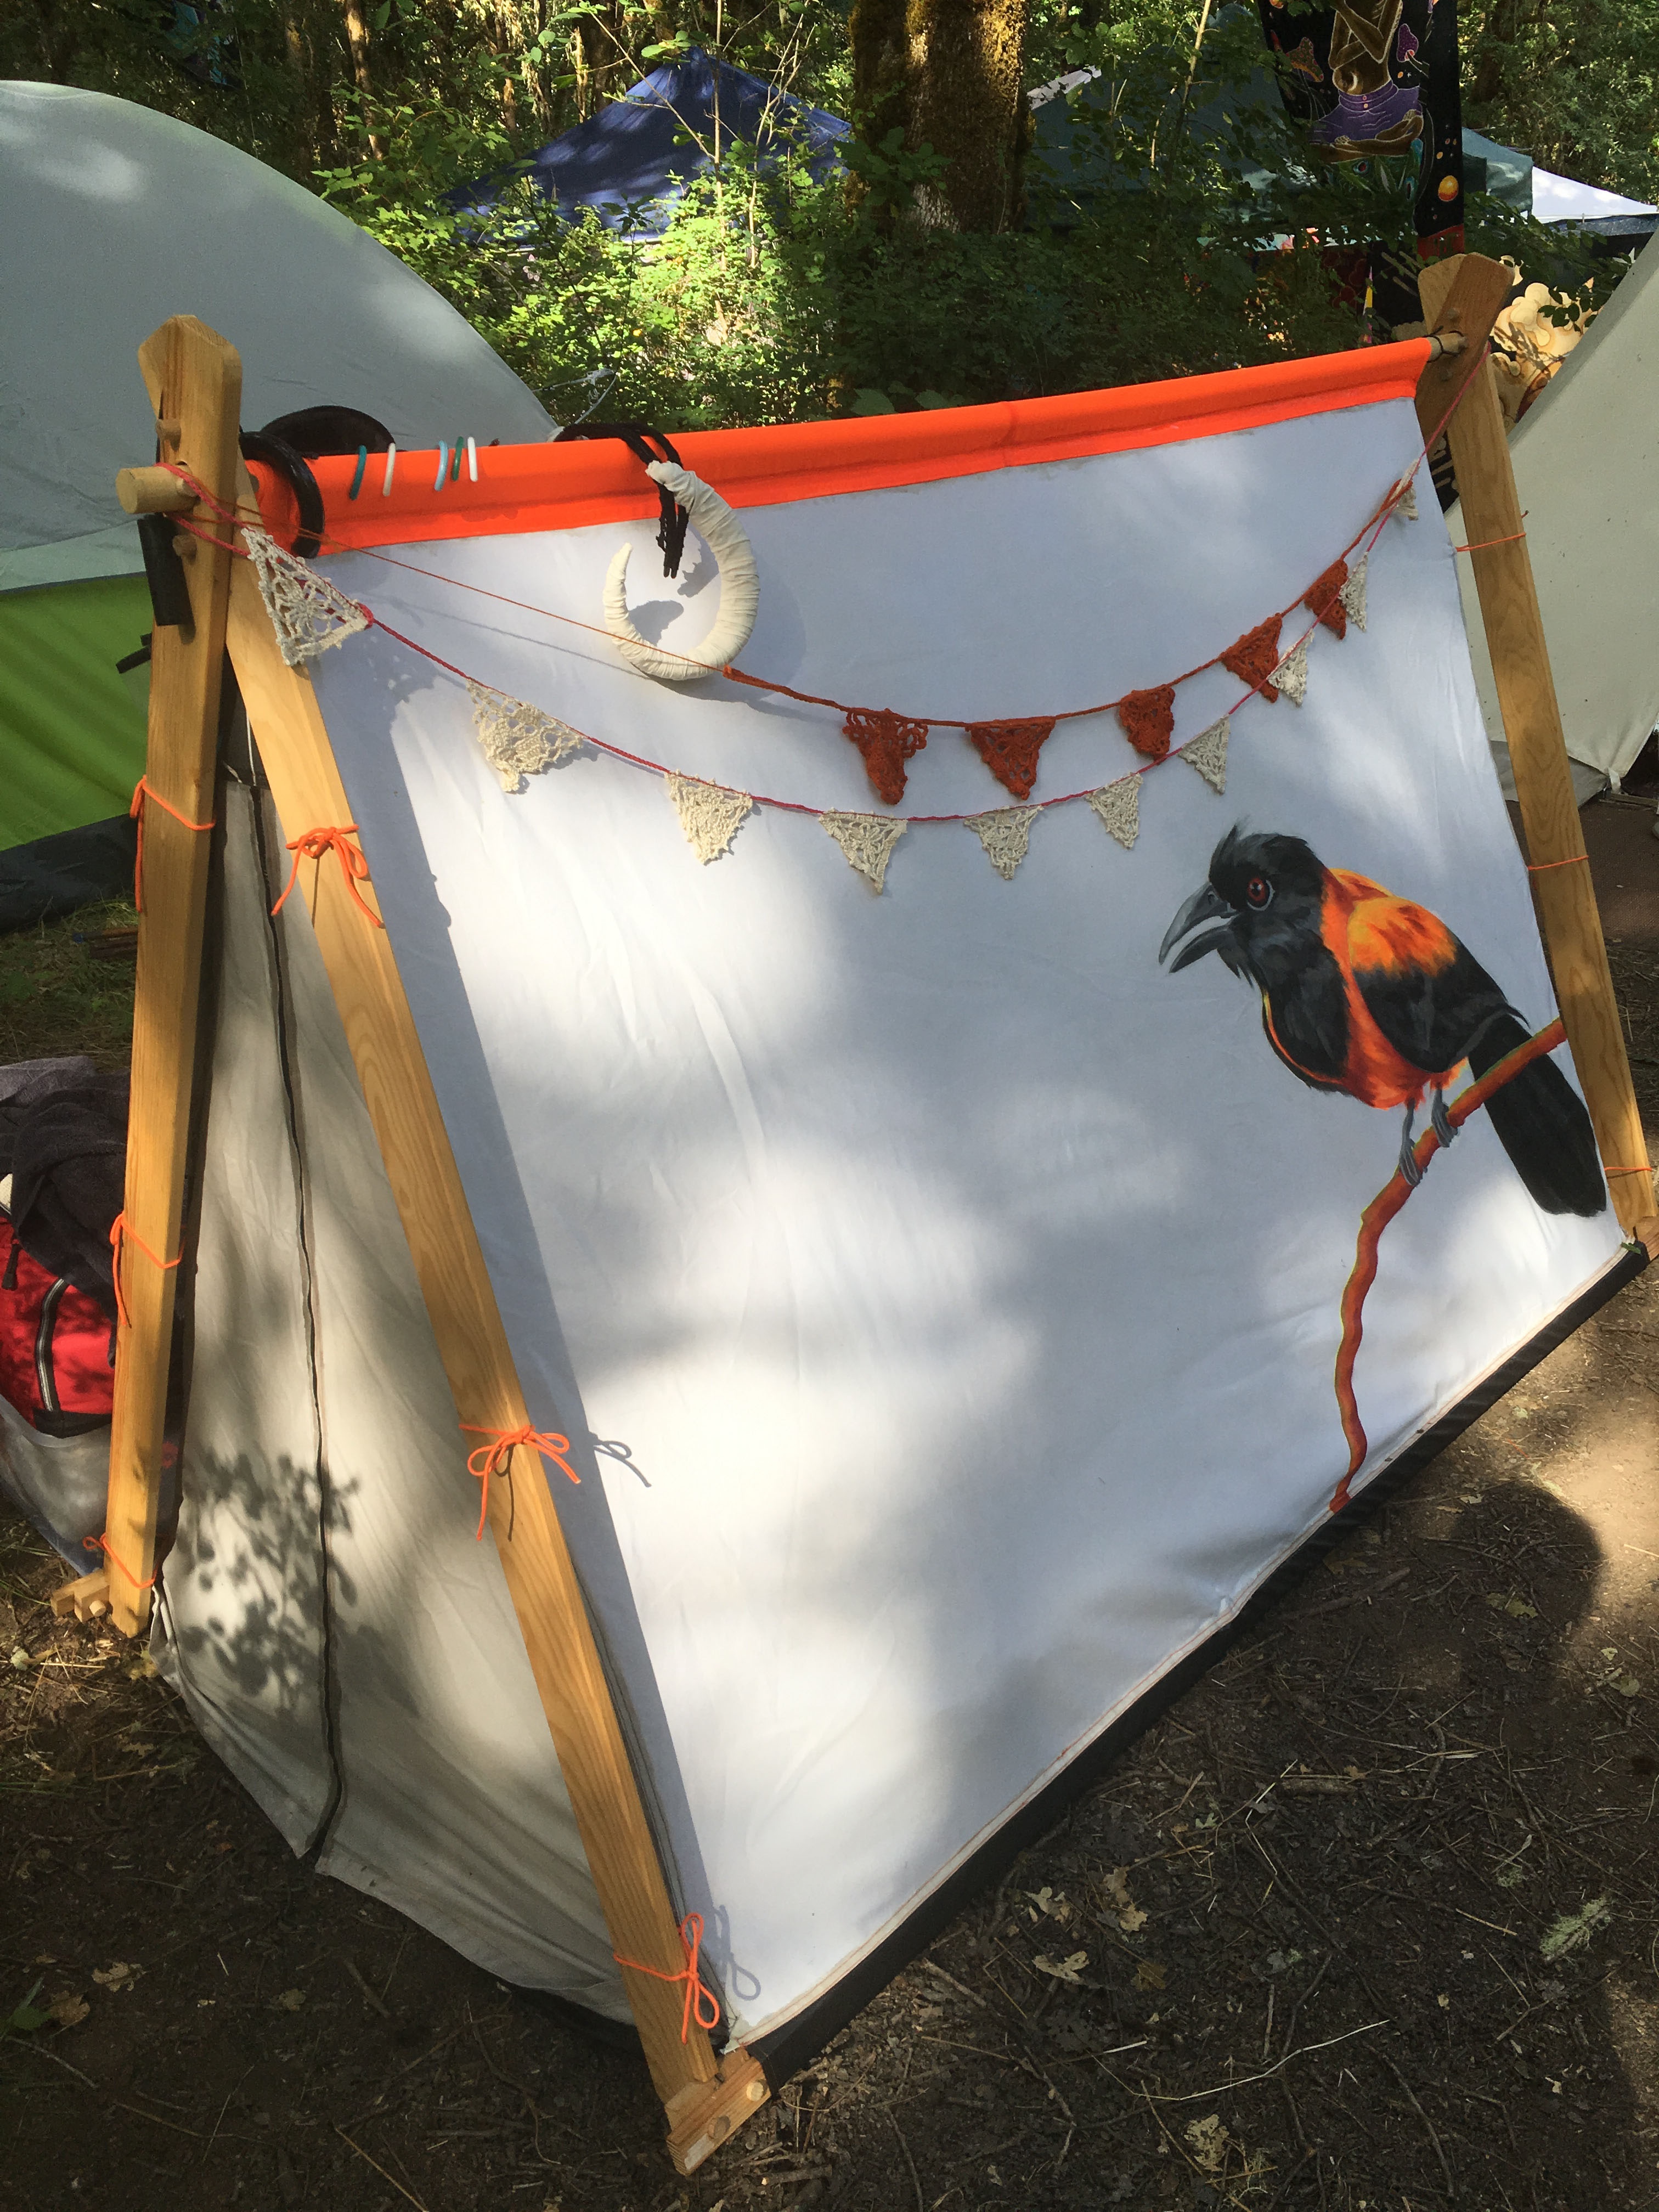 Tent with a bird on it